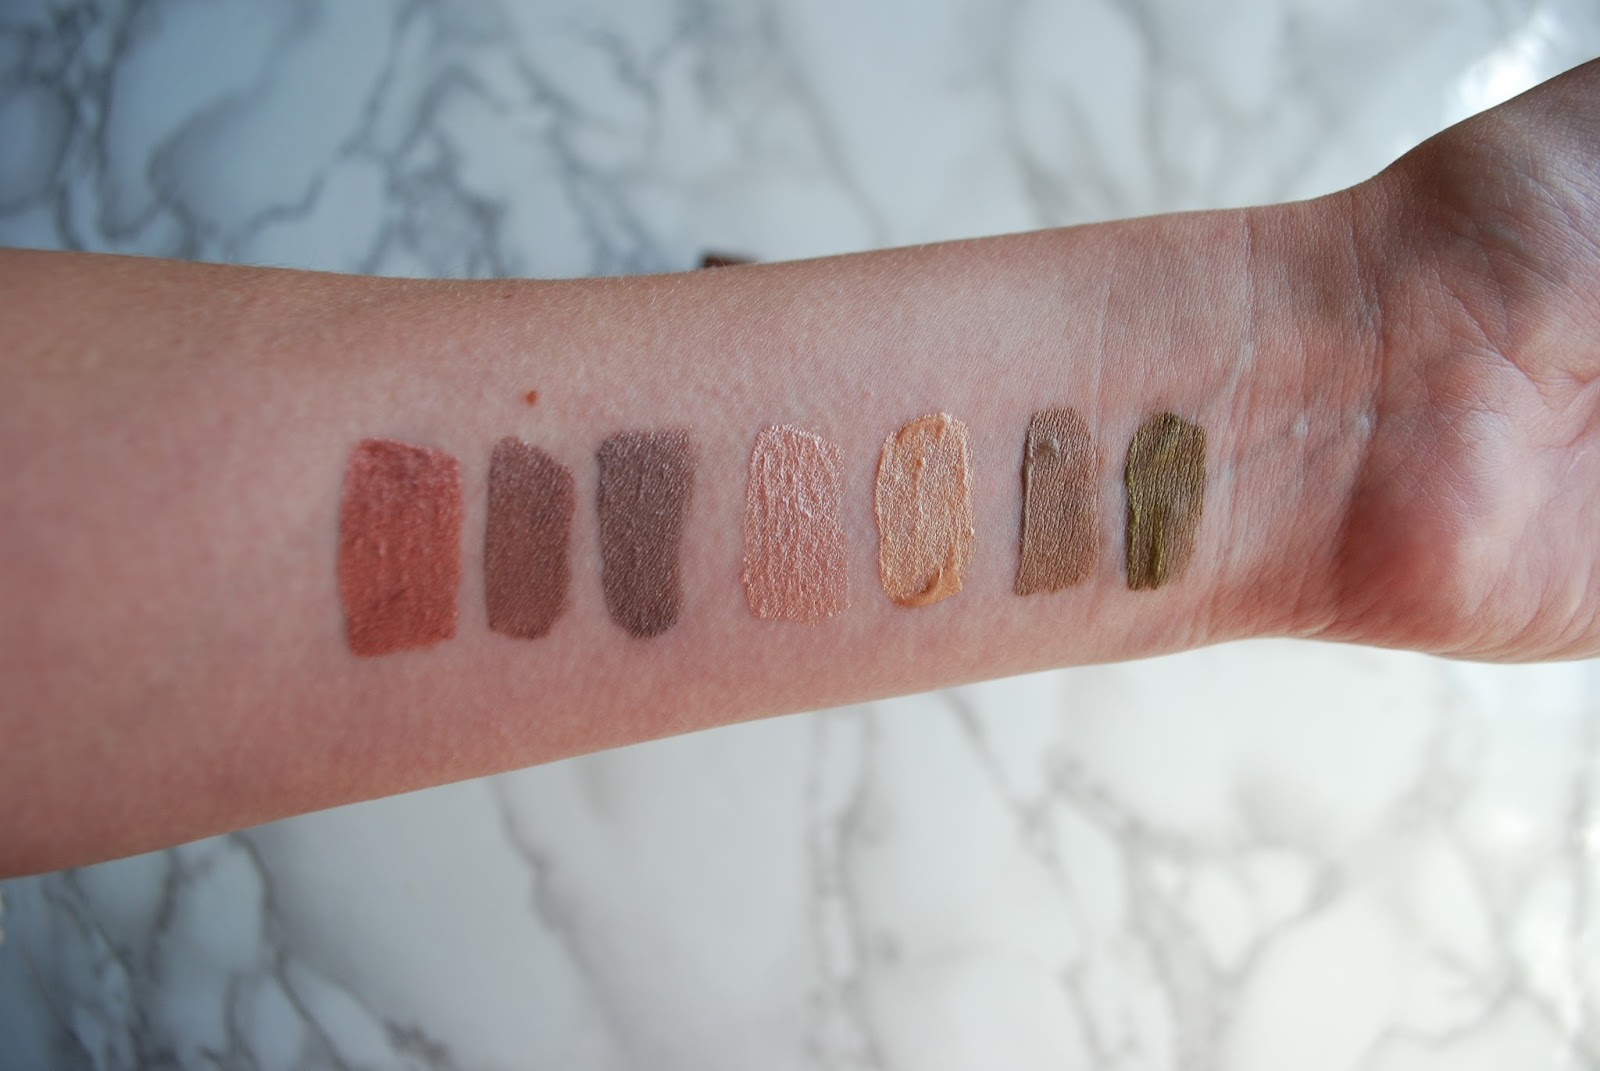 drugstore glossier lidstar dupe: bourjois satin edition liquid eyeshadows swatches